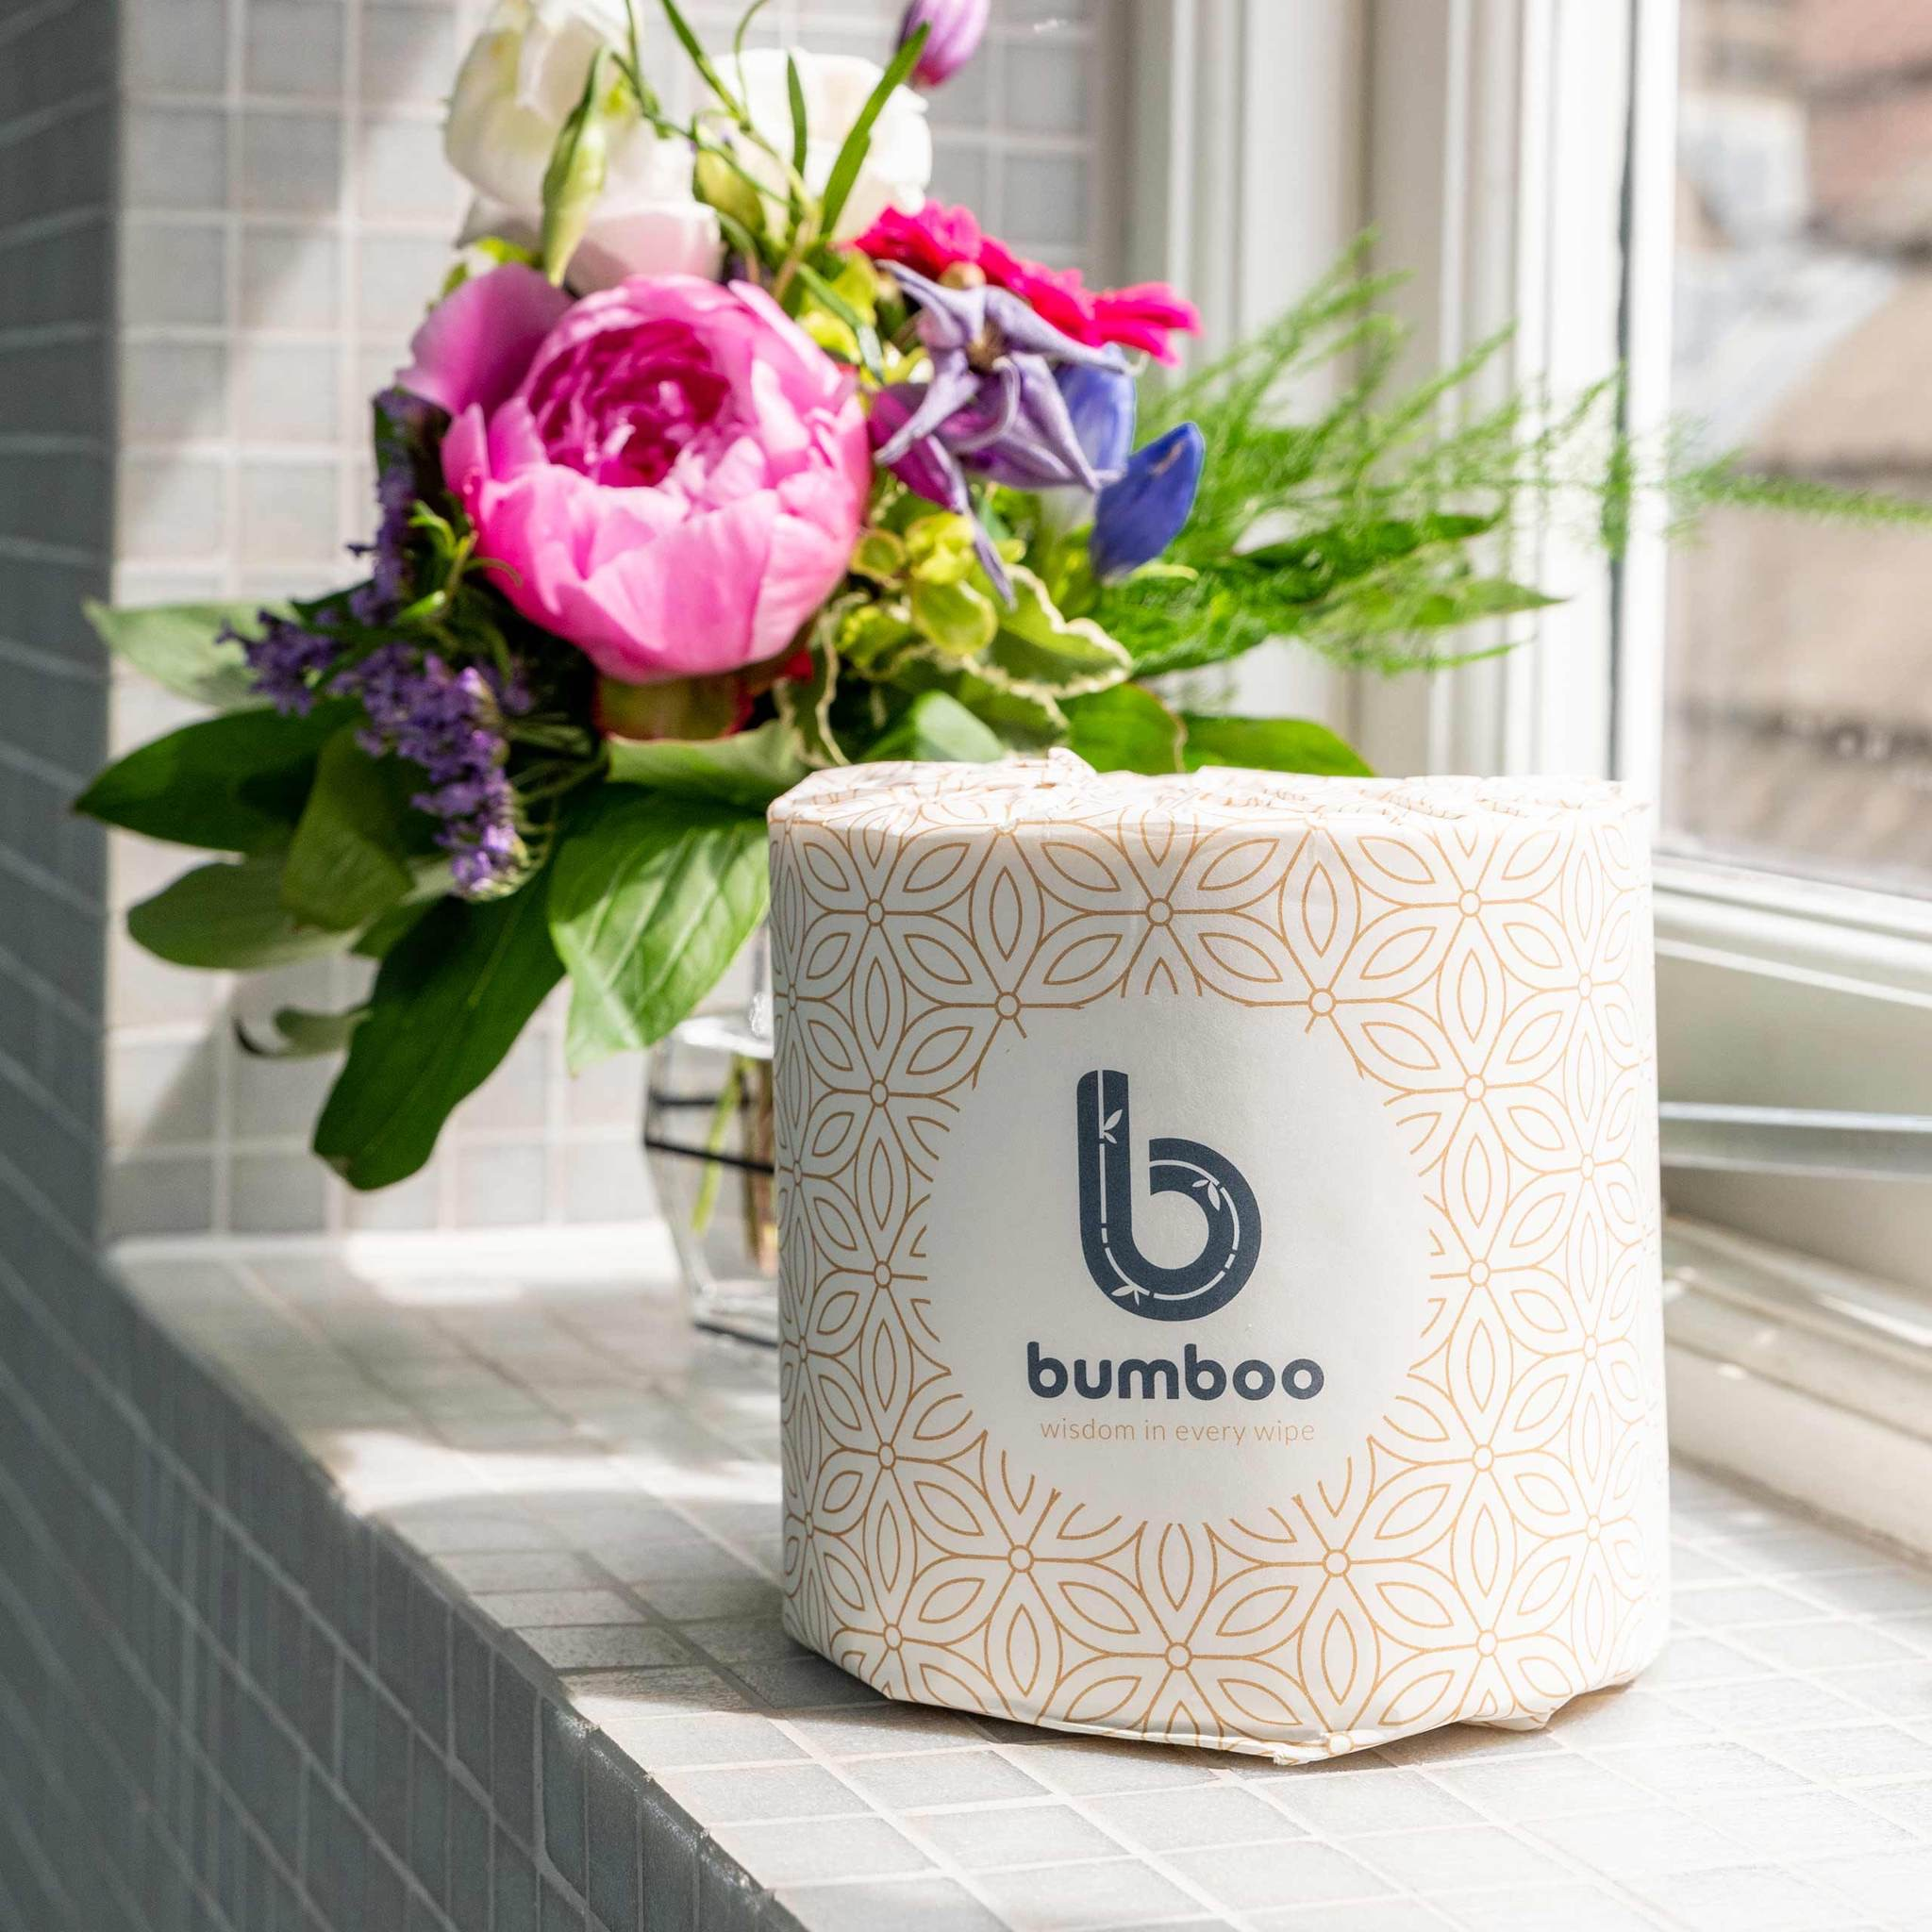 Bumboo Toilet Roll – 'Wisdom In Every Wipe!'